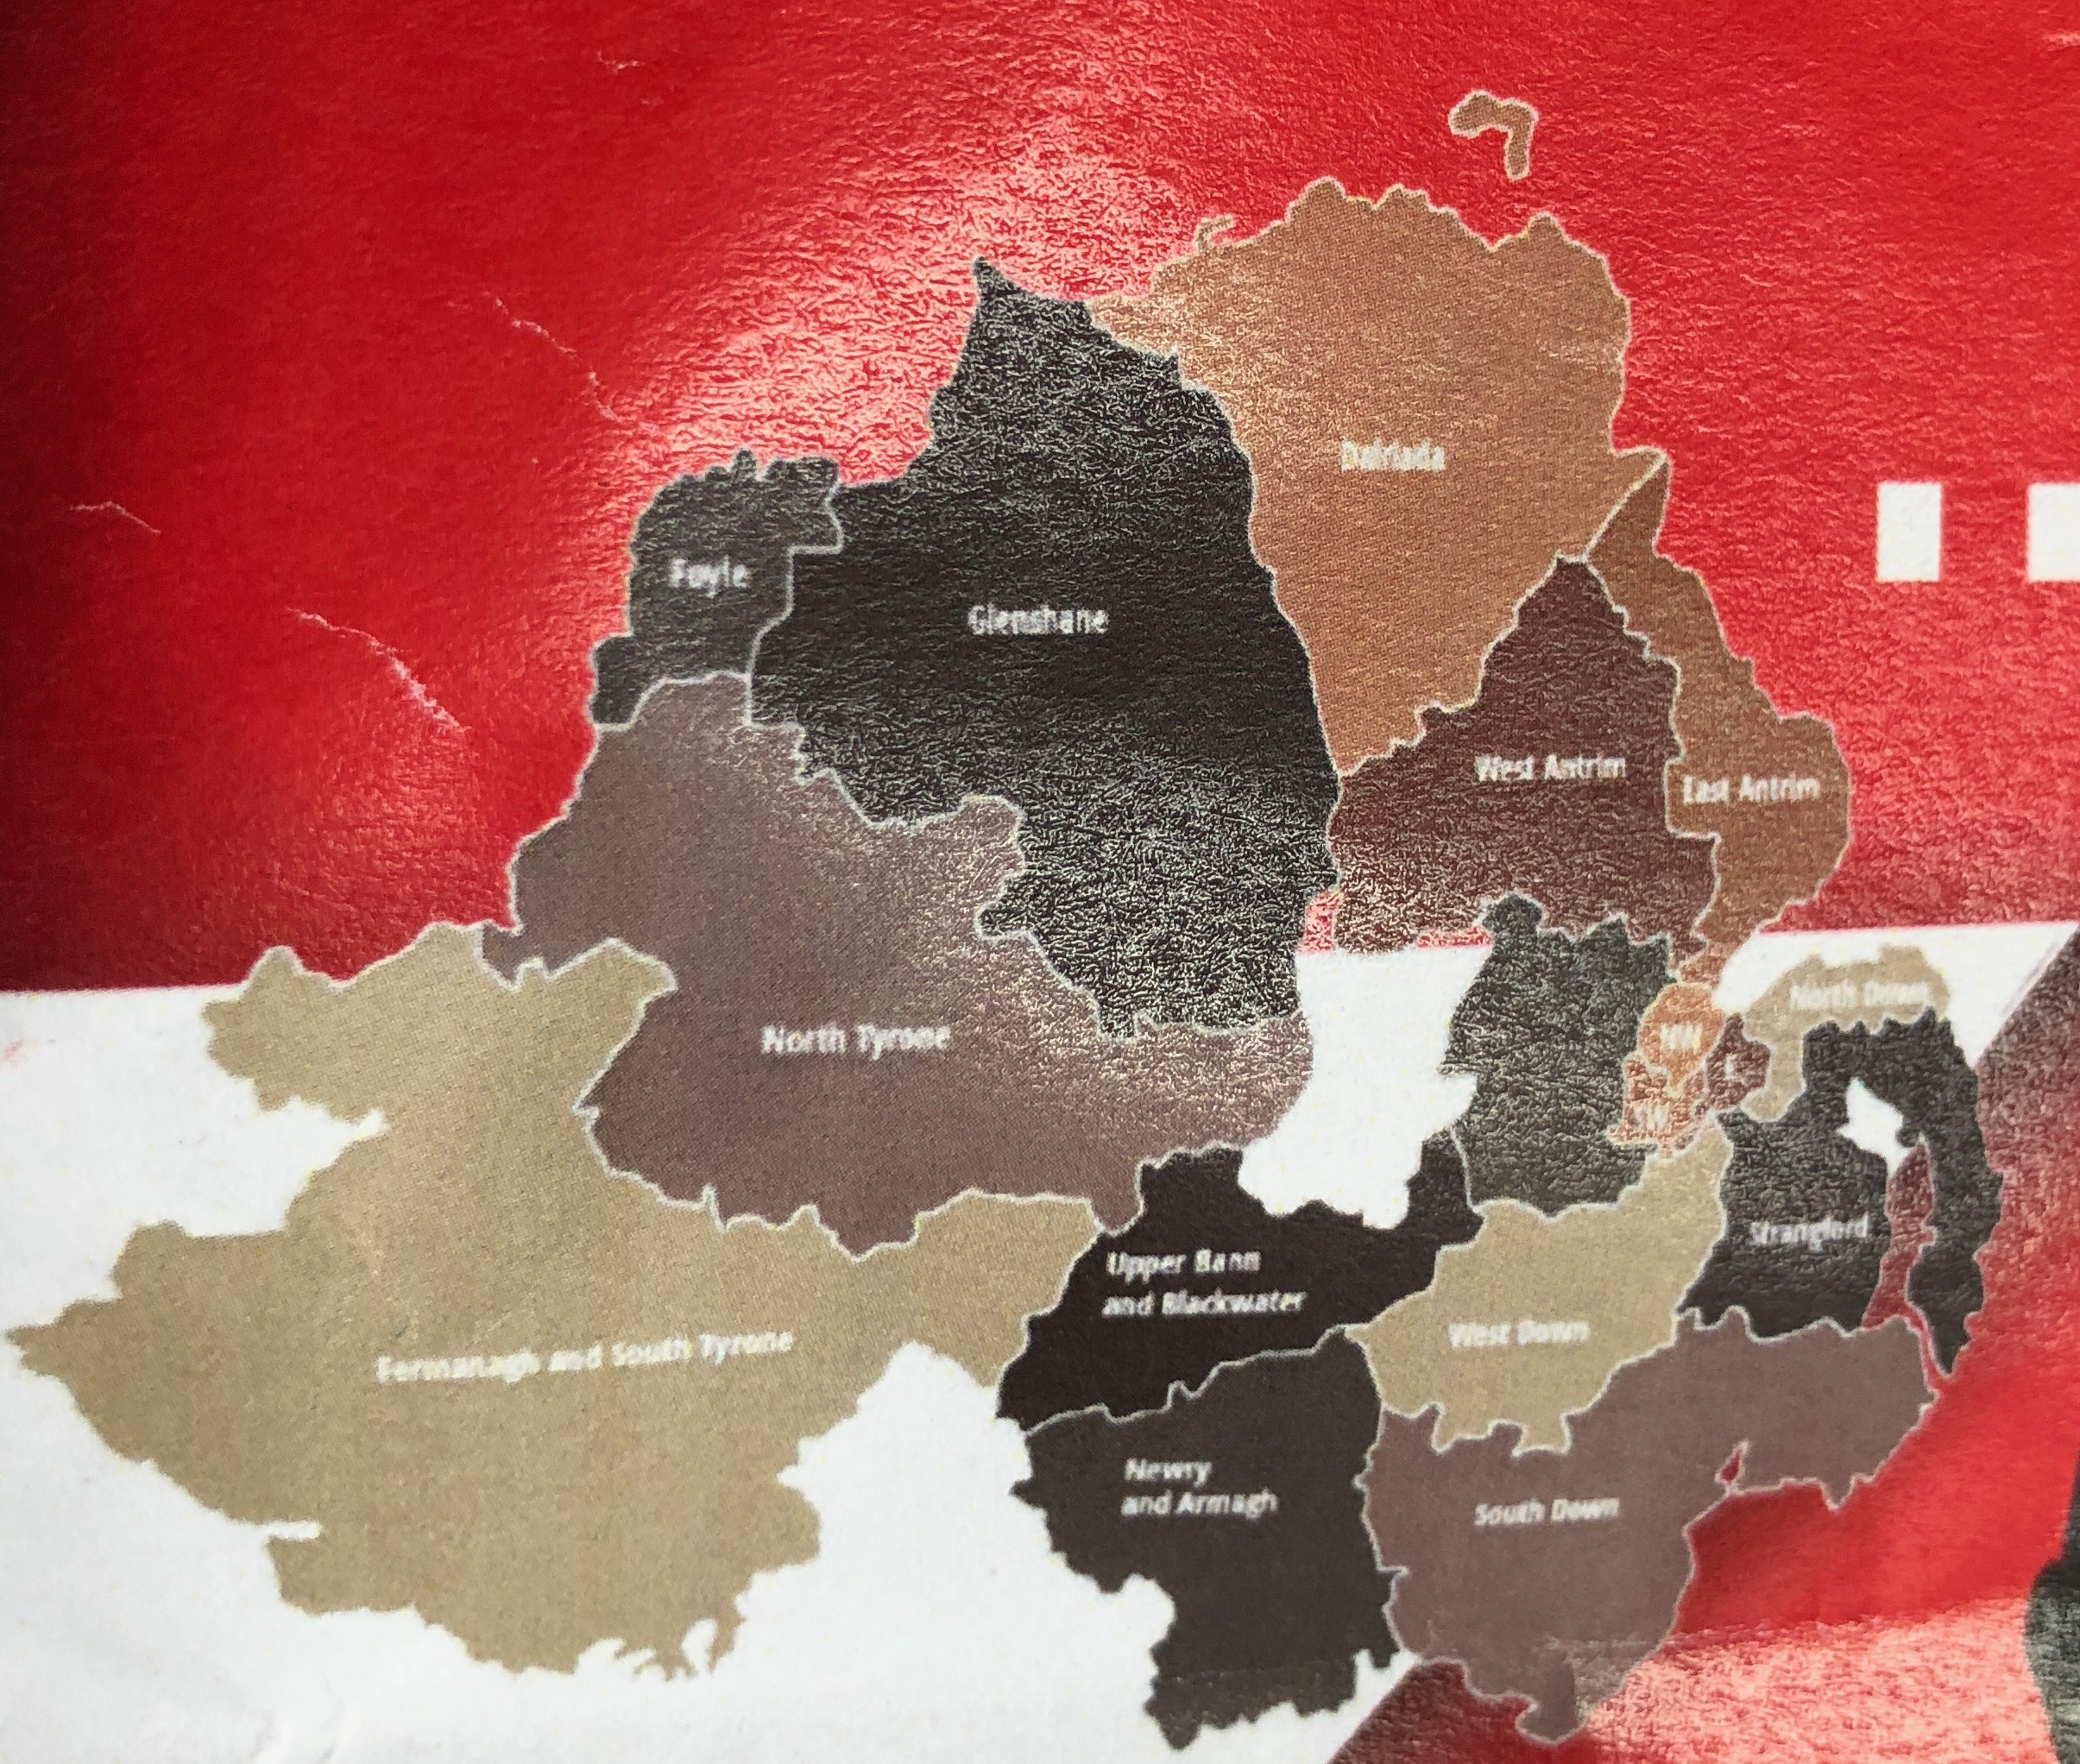 And now, the bad news: revised electoral boundaries - Jude Collins